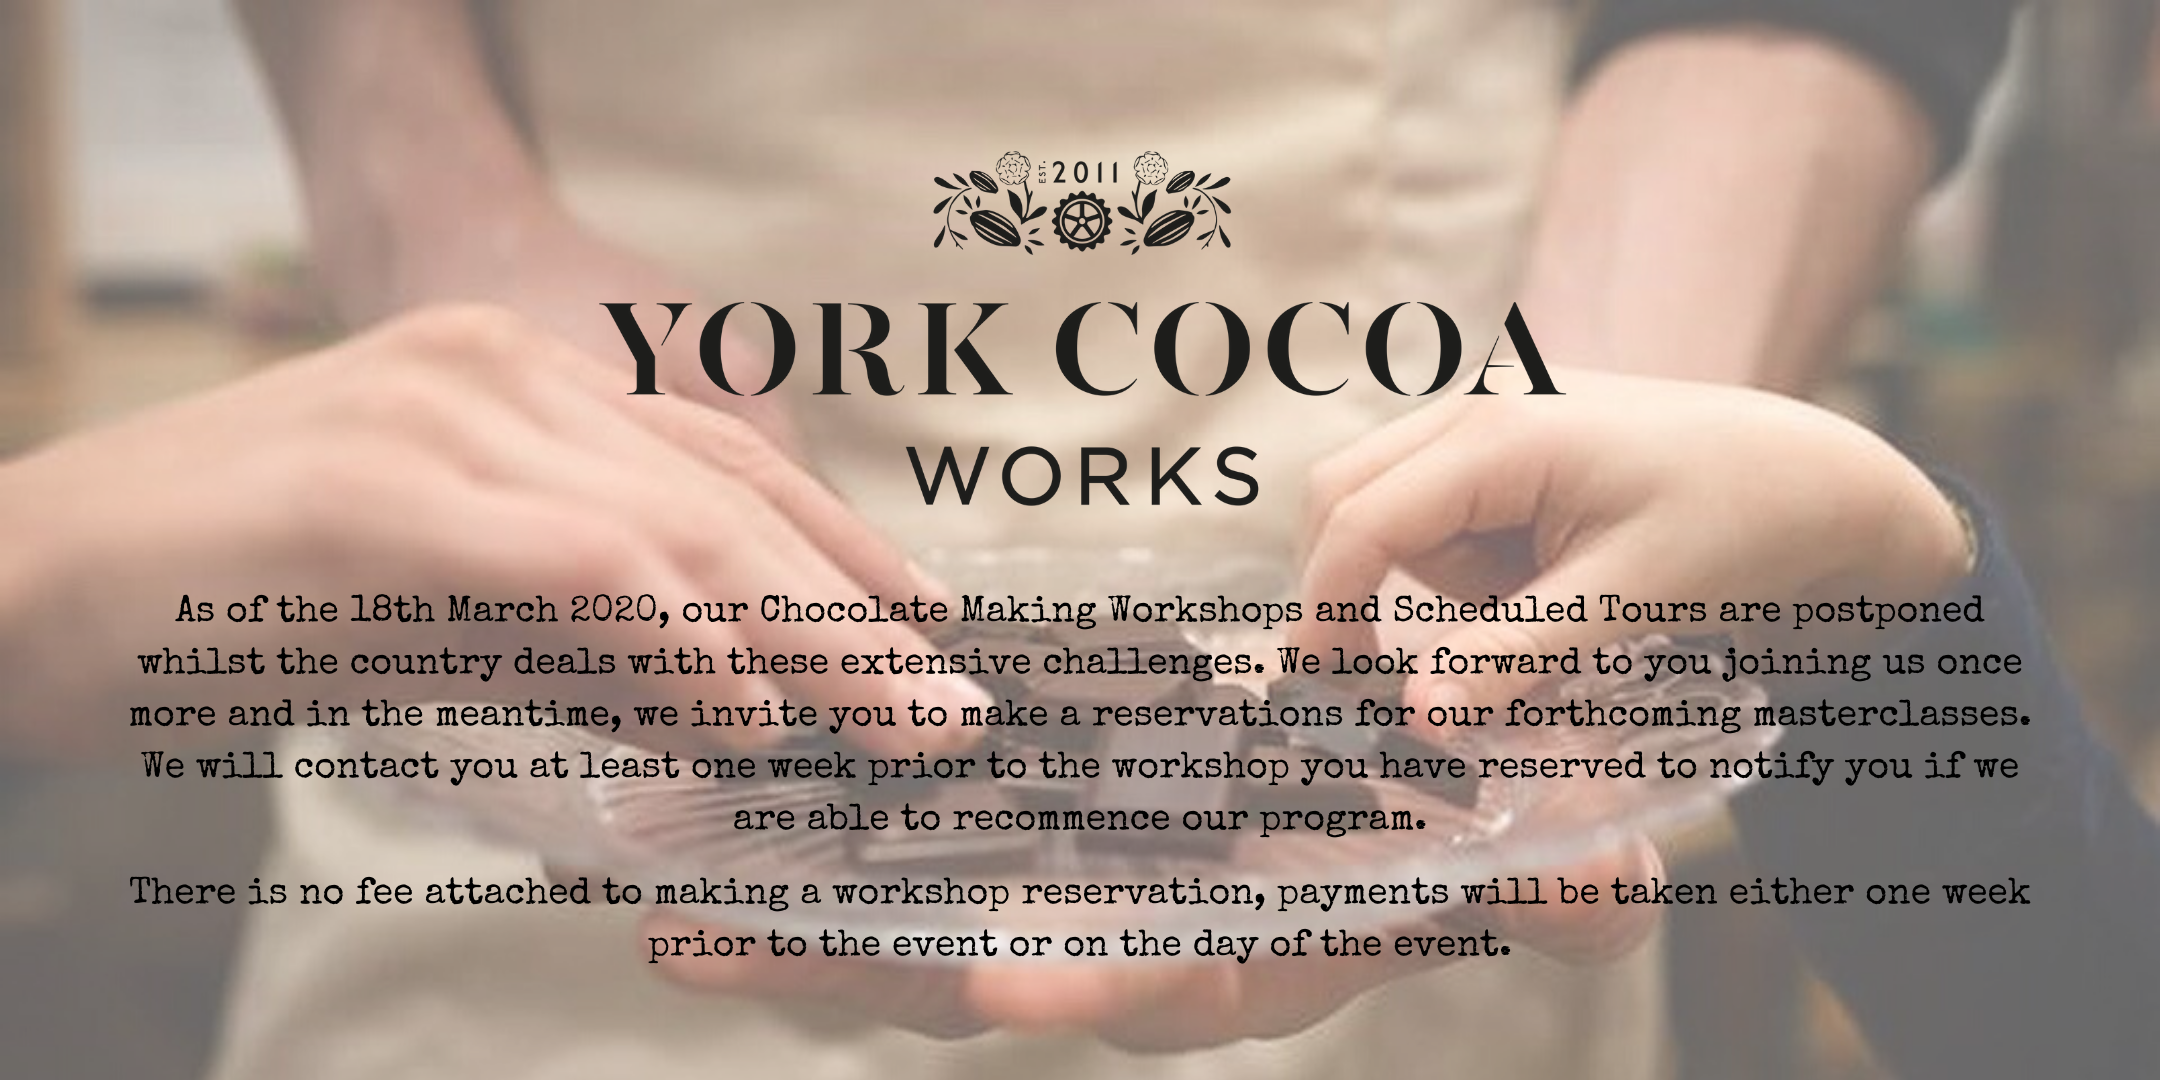 York Cocoa Works Chocolate Tasting Class